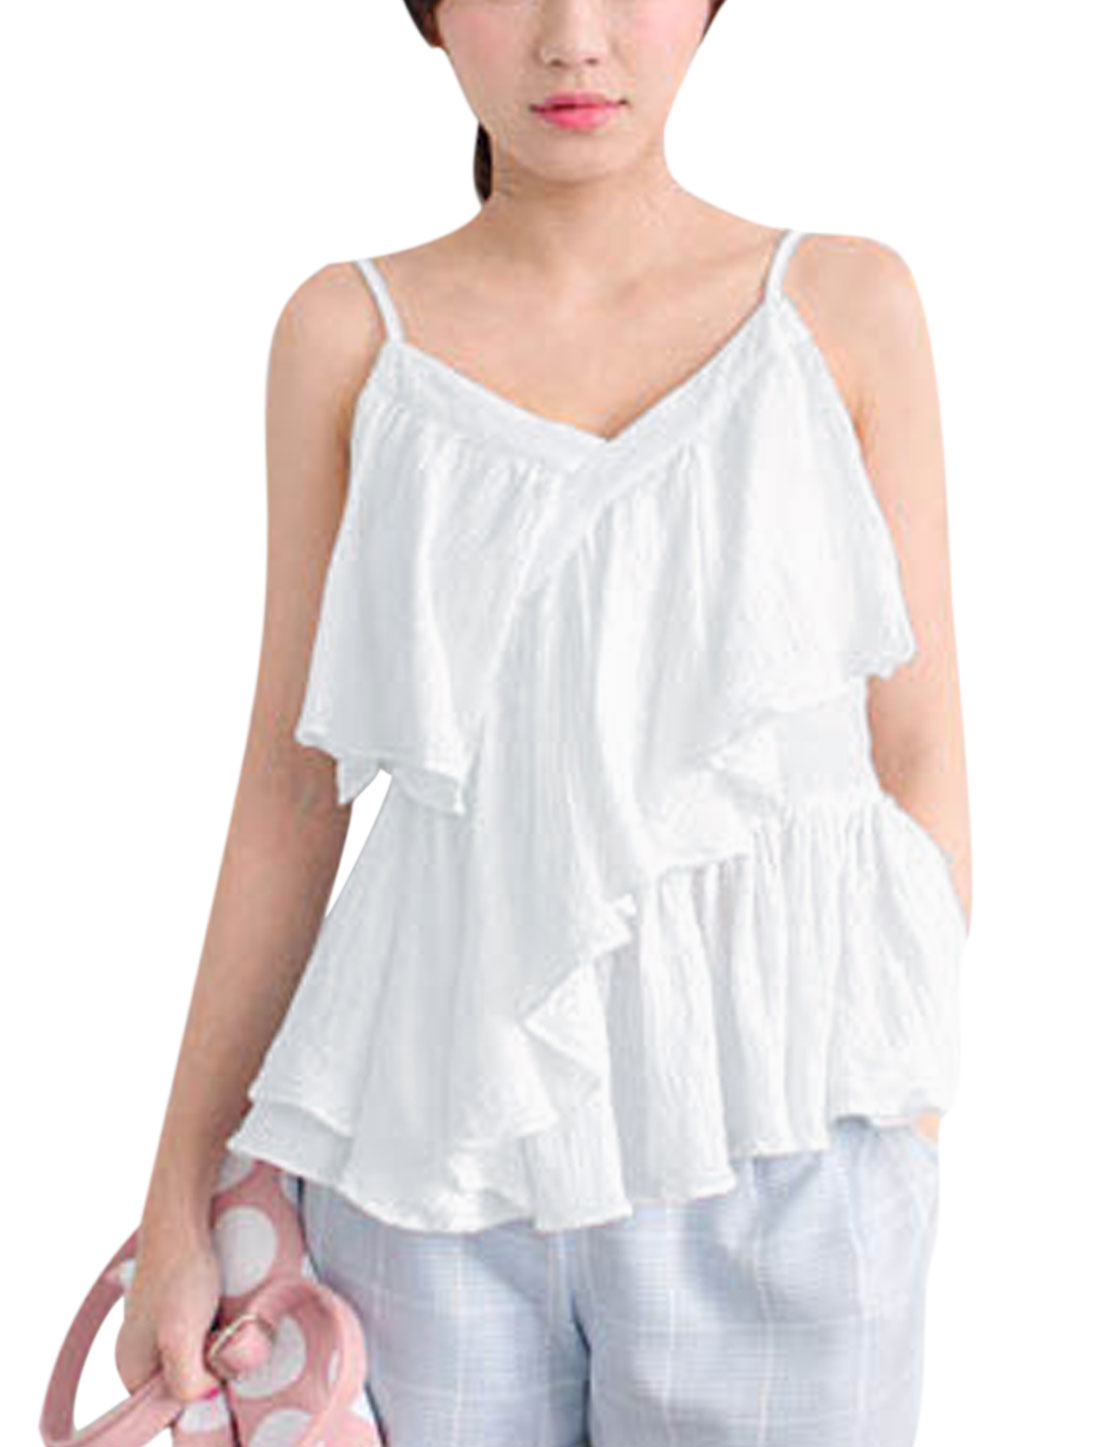 Lady Spaghetti Strap Flouncing Design Cami Top White XS